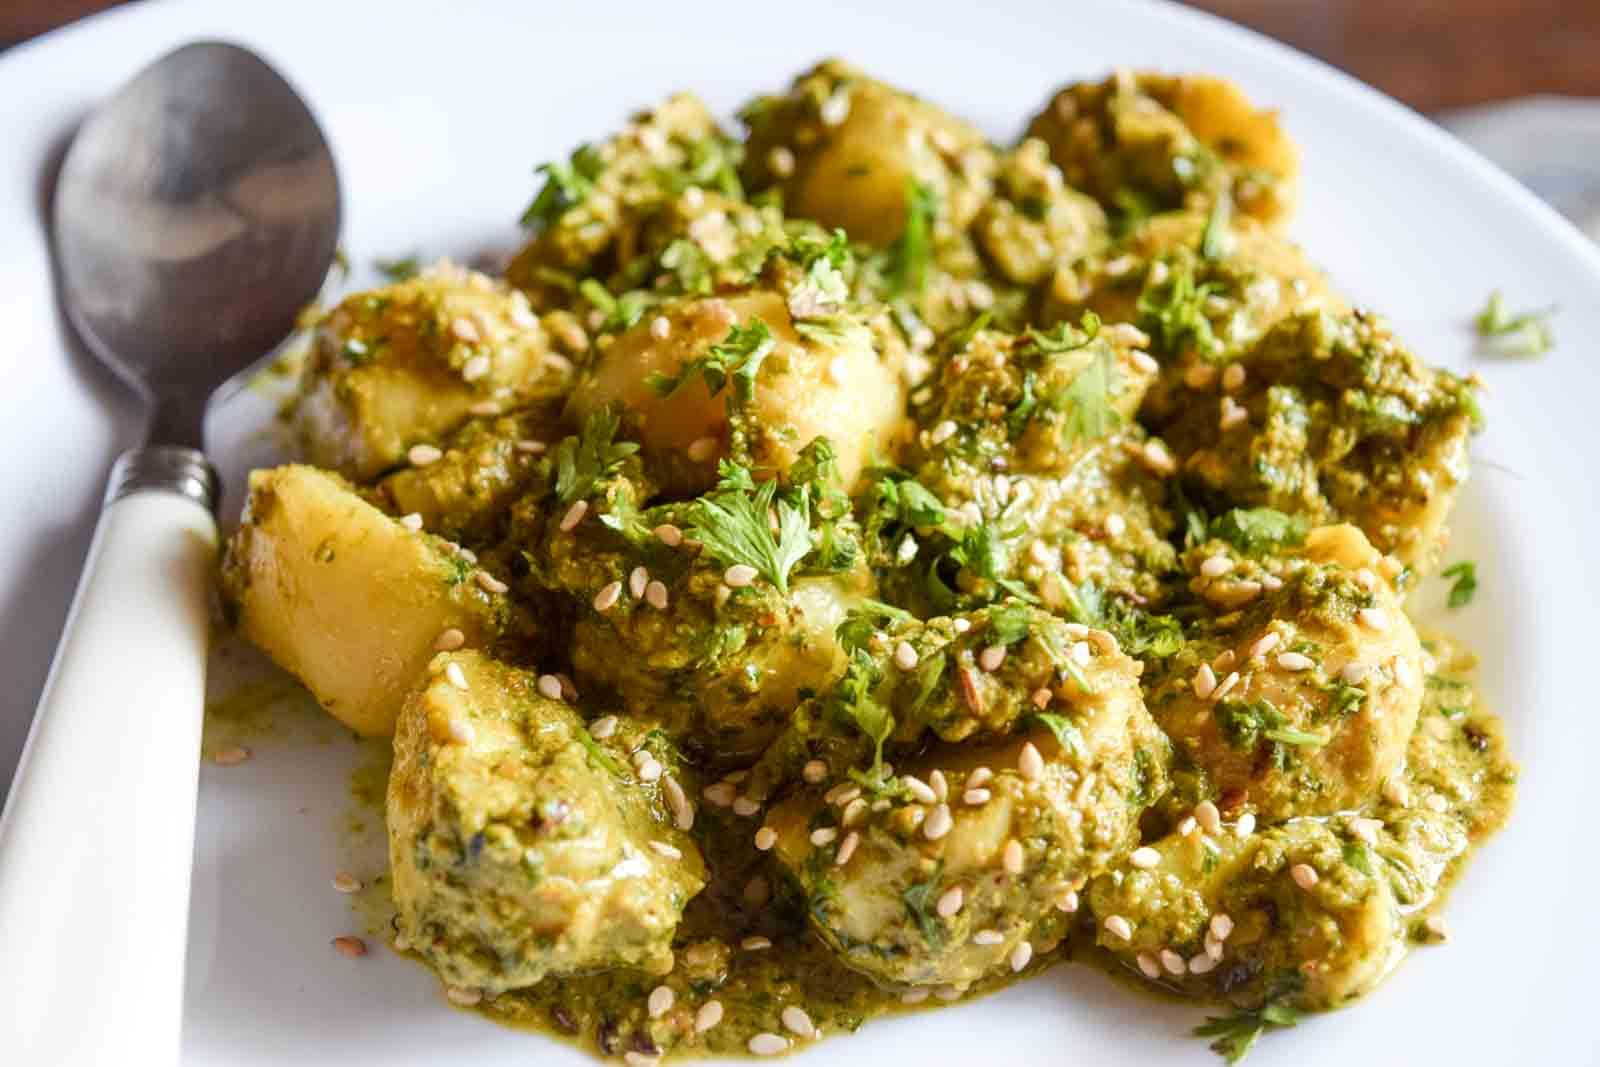 til ke aloo recipe in hindi til ke aloo recipe in hindi recipe aloo recipes dried vegetables and recipes forumfinder